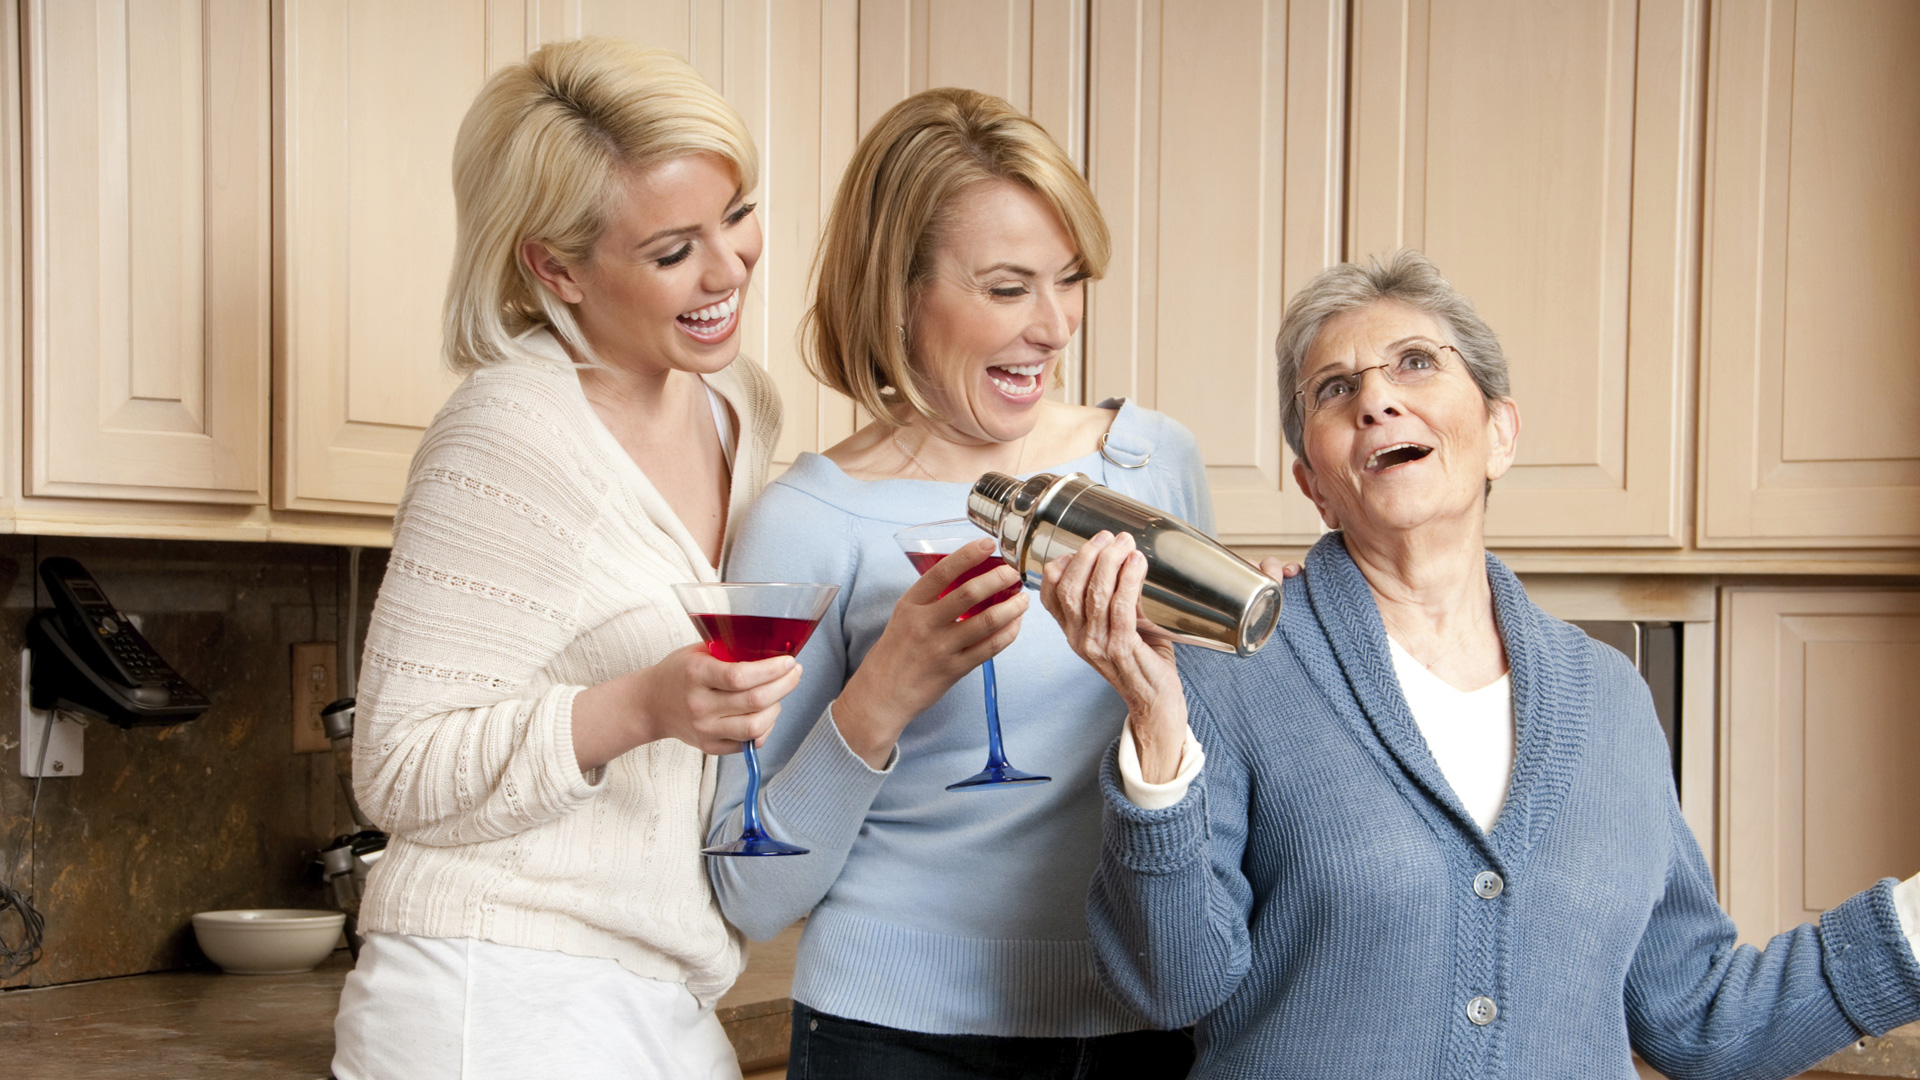 Grandmother, mother and daughter making cocktails